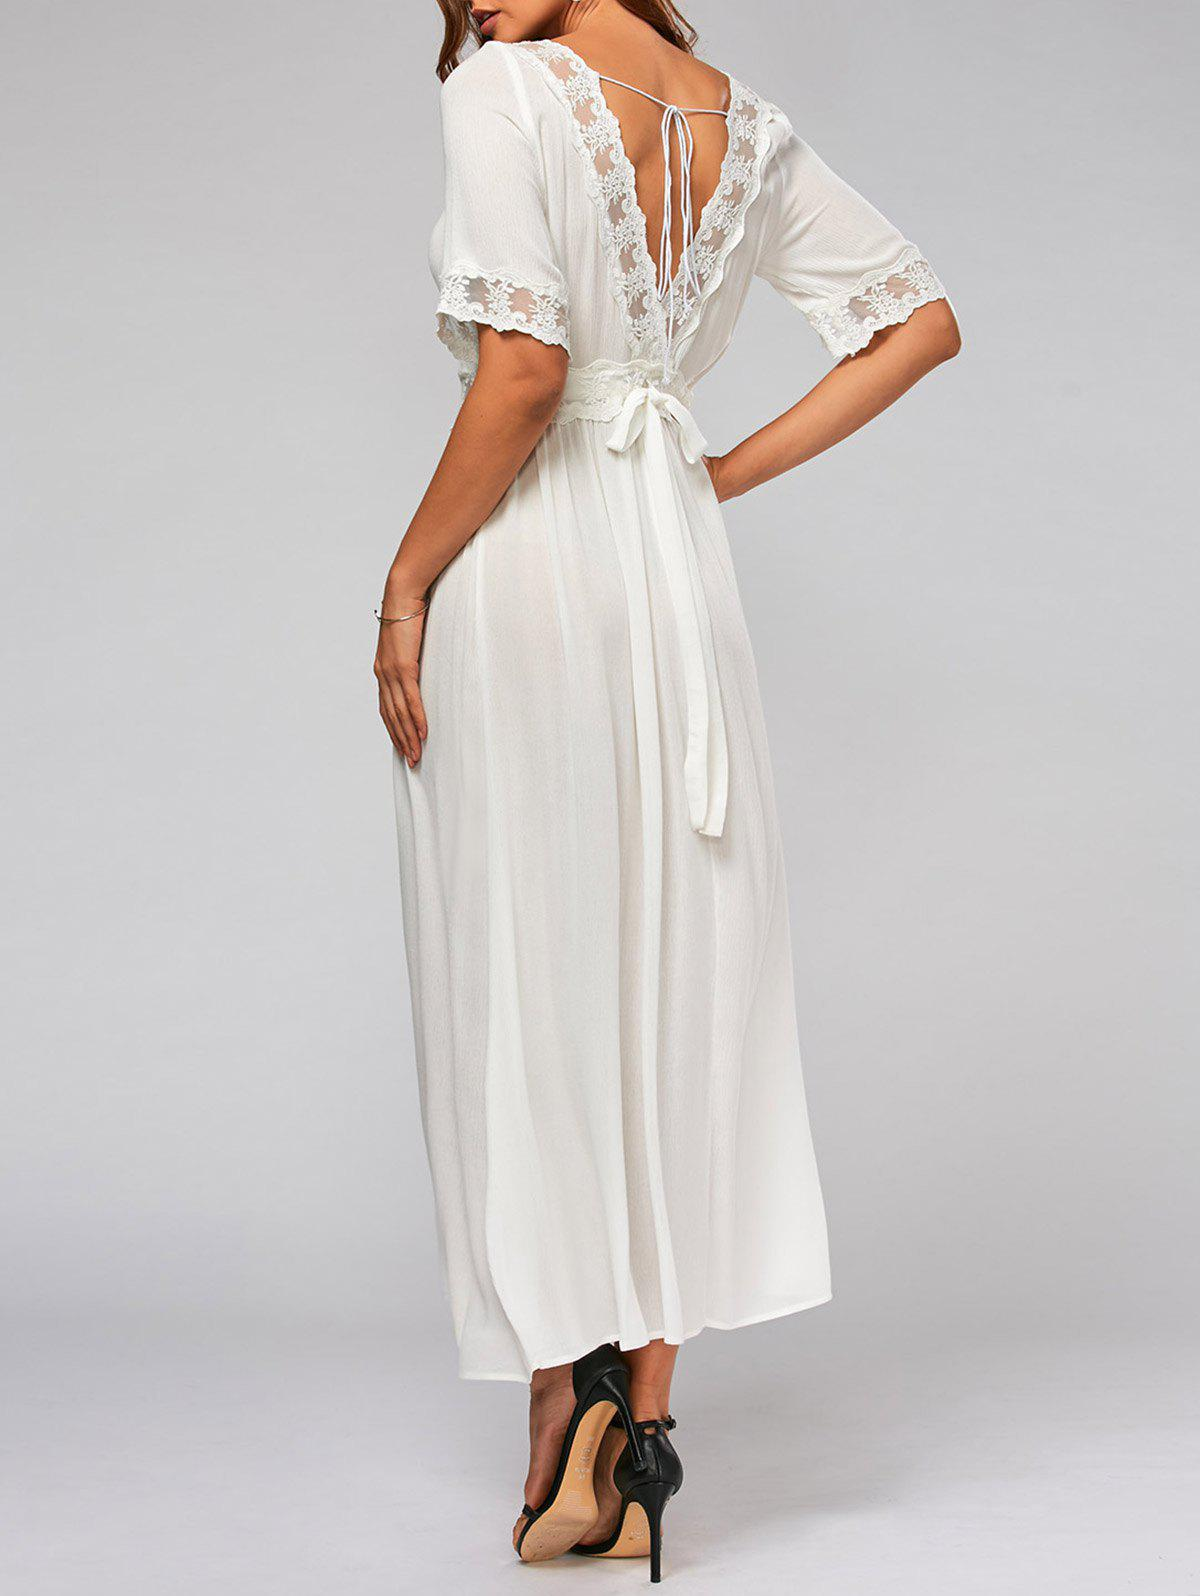 Bowknot Tail Lace Trim Flare Maxi Dress - Blanc 2XL